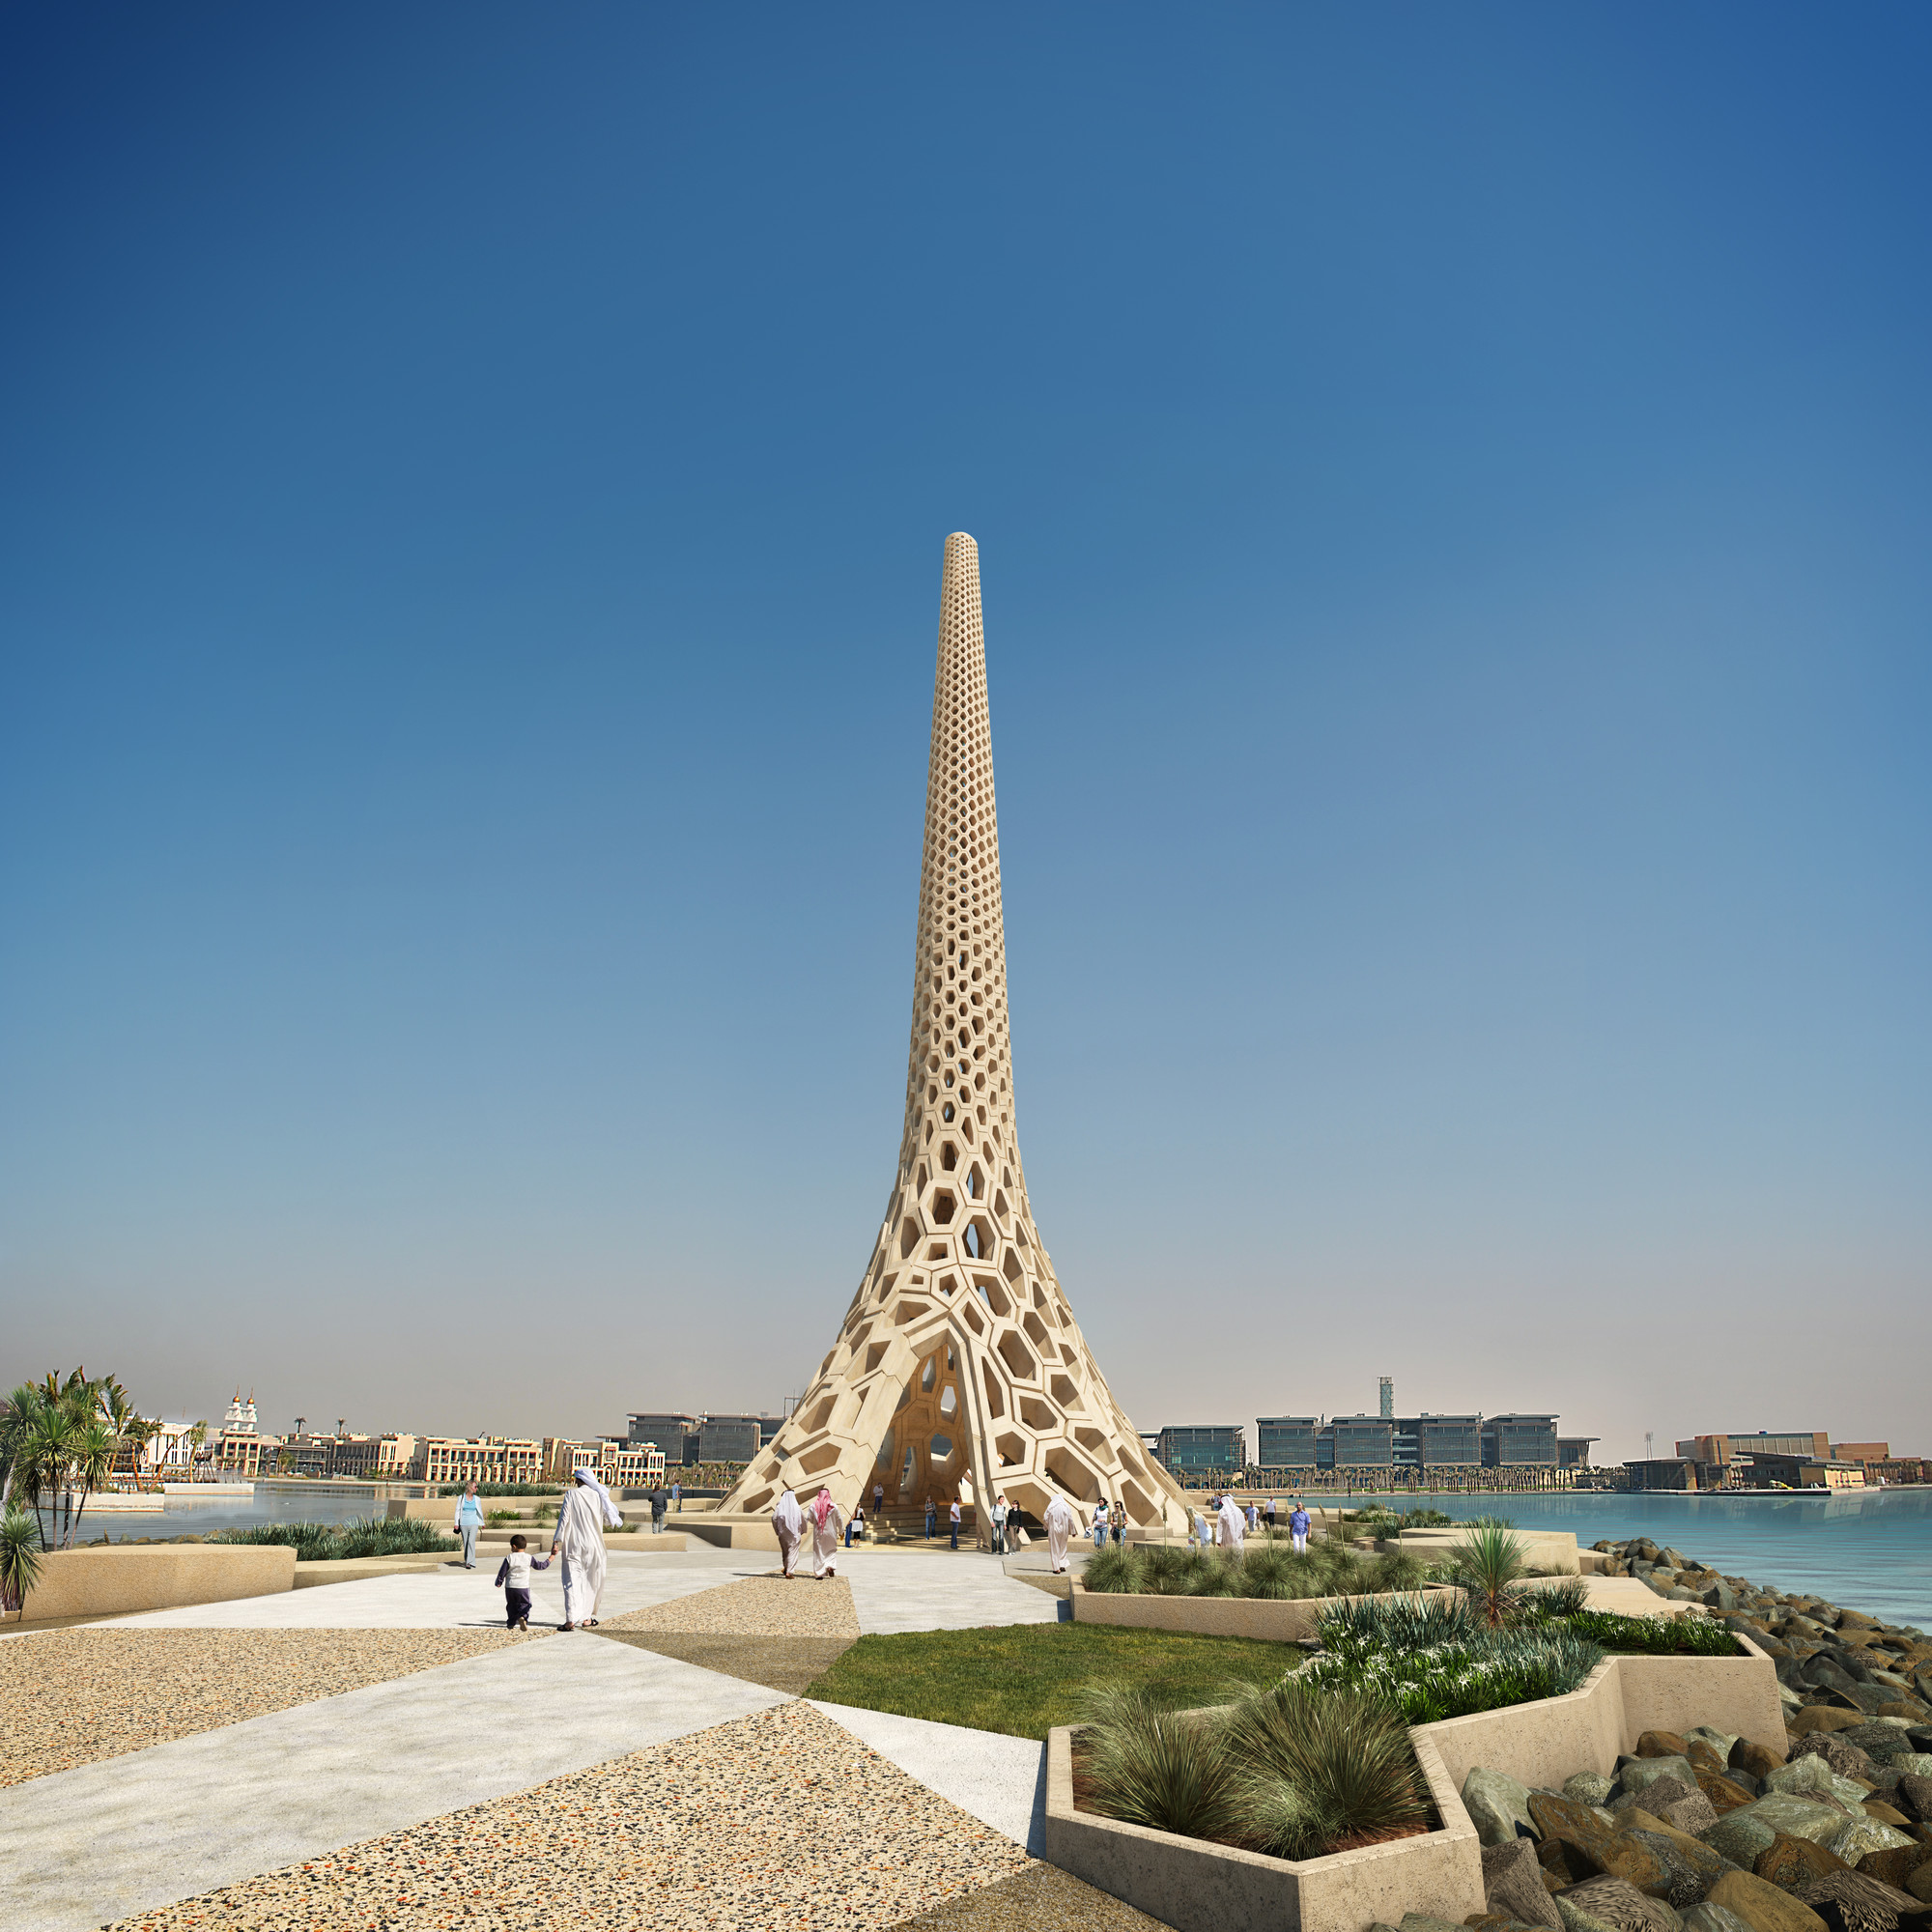 Arte y Arquitectura: Breakwater Beacon, 60 metros de hormigón blanco por UAP Design Studio, Courtesy of UAP